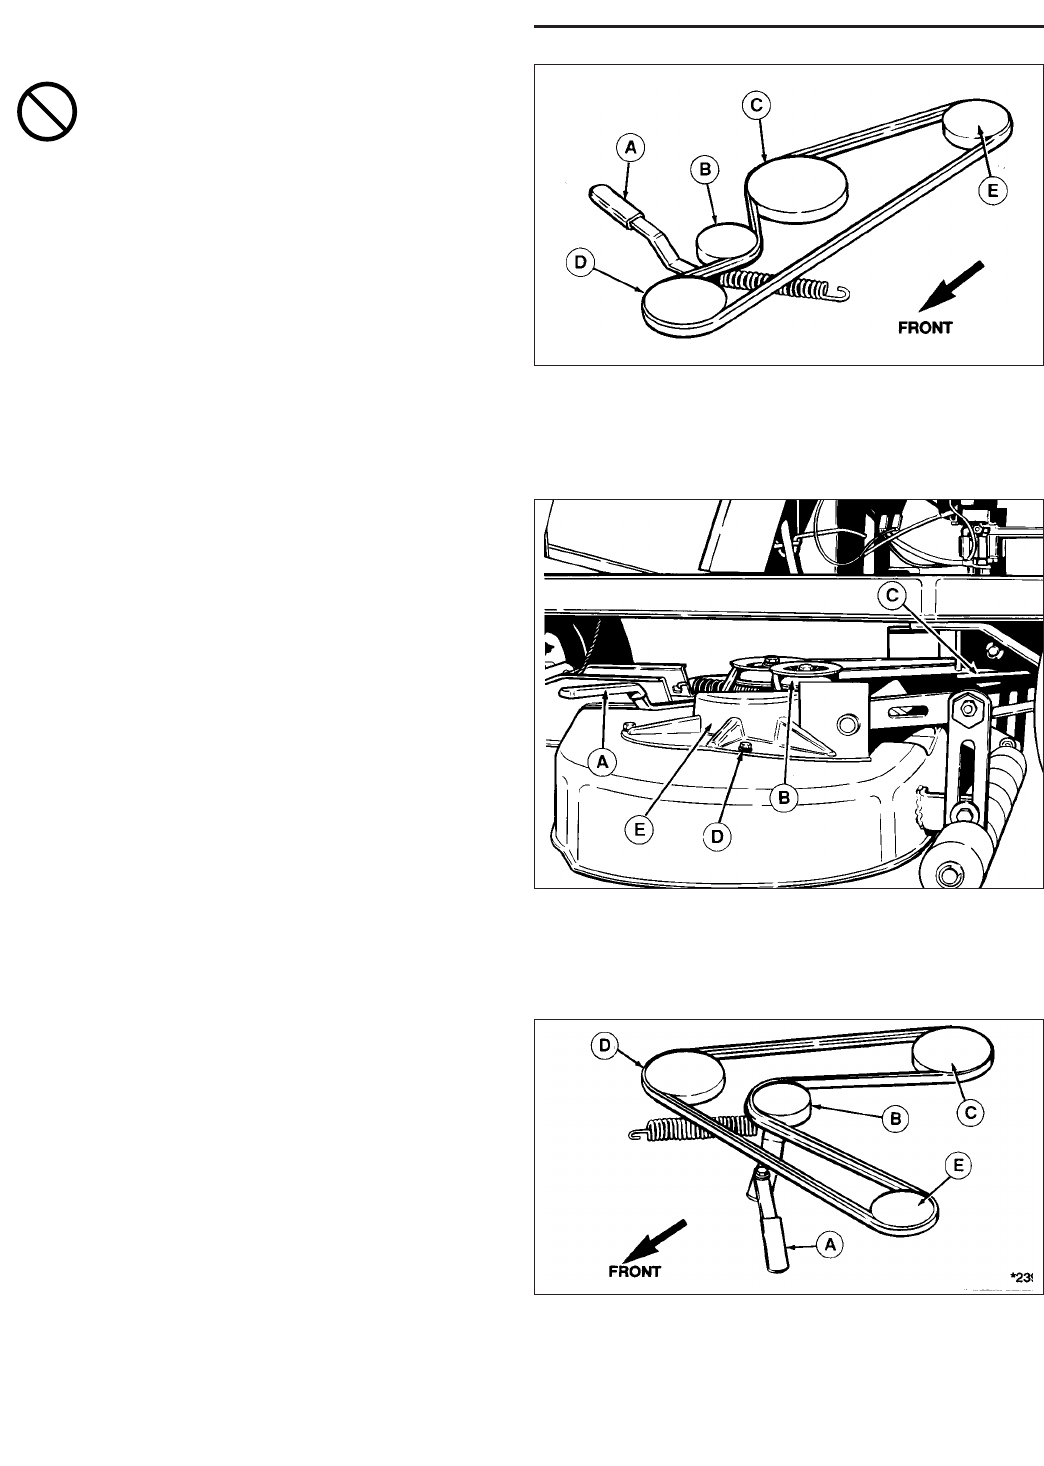 Snapper Belt Replacement Diagram : snapper, replacement, diagram, Snapper, RIDER, DRIVE, REPLACEMENT,, MOWER, REPLACEMENT